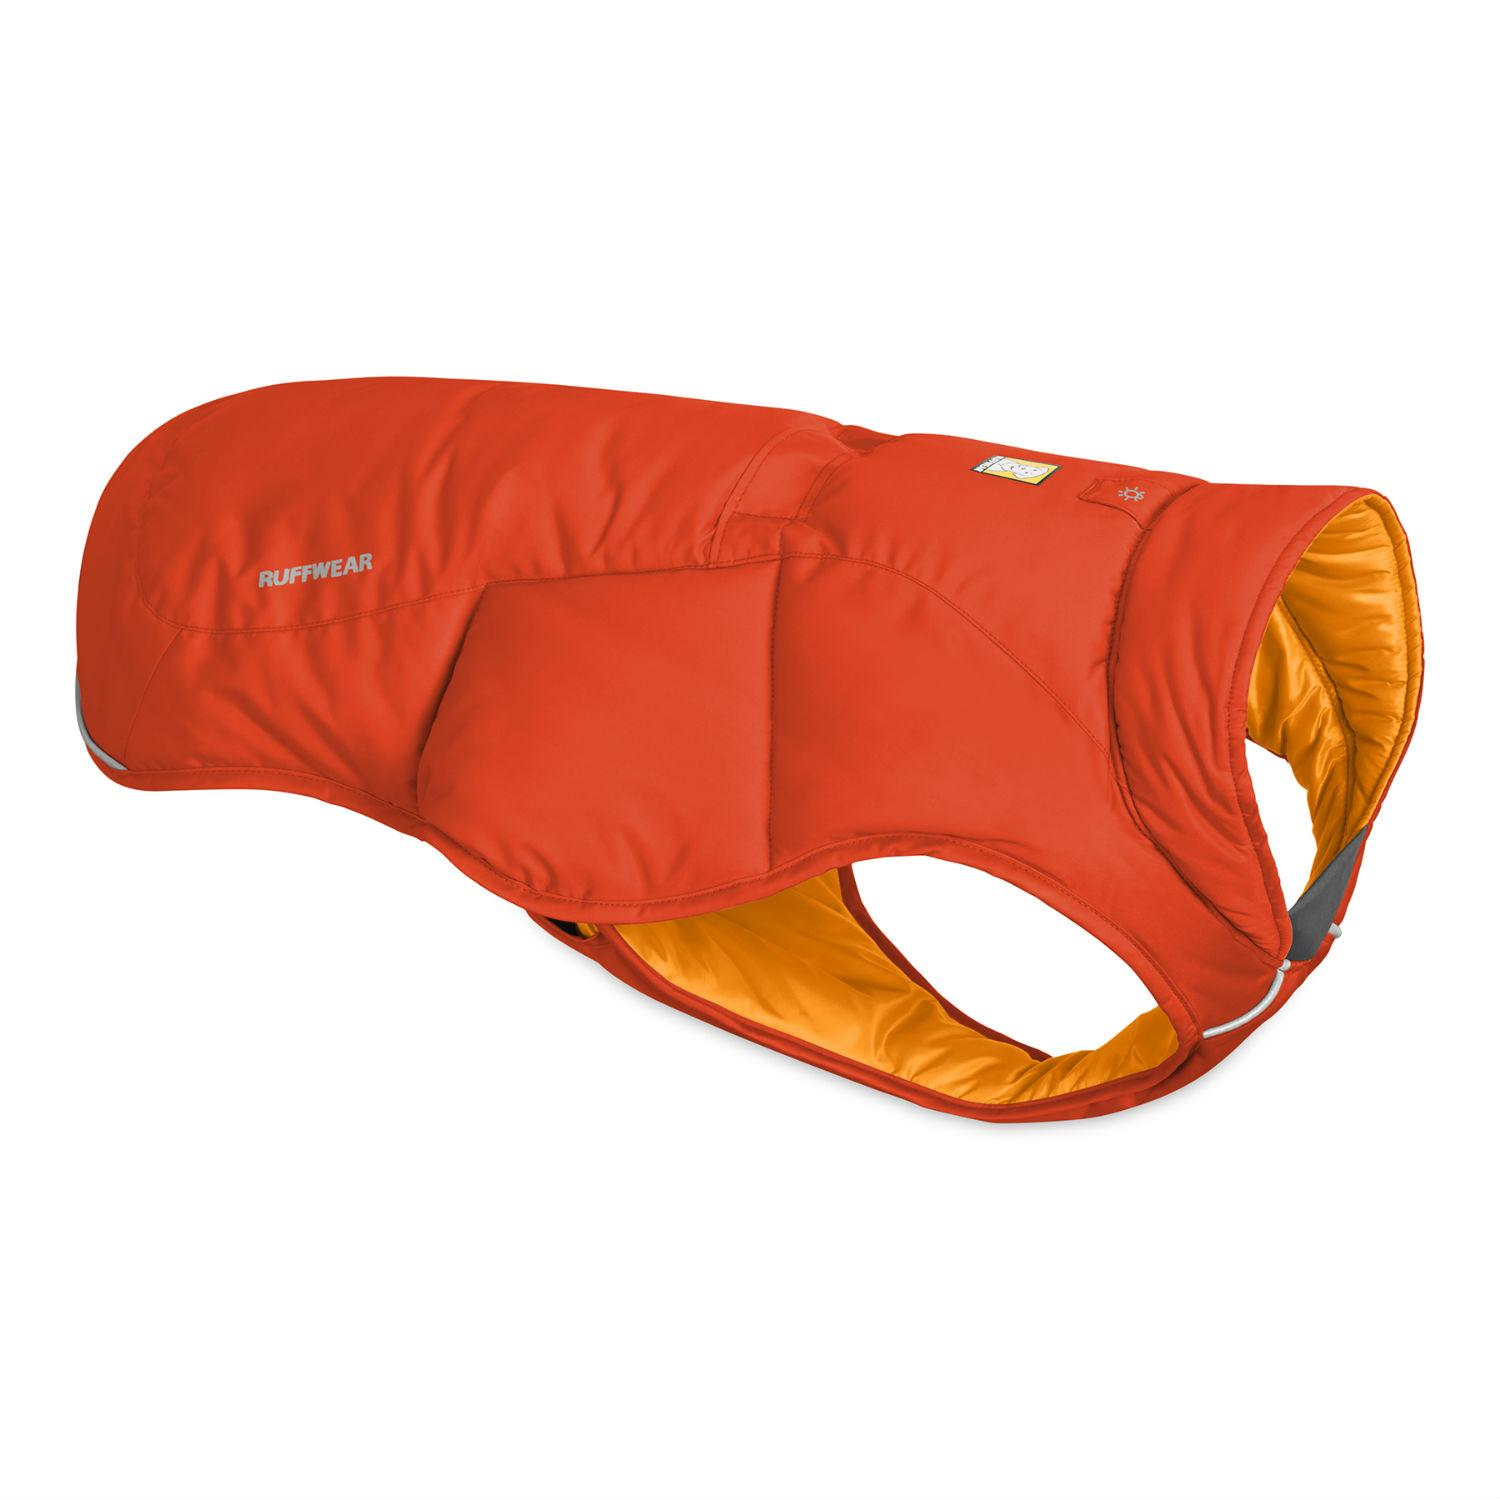 Quinzee  Insulated Dog Jacket by RuffWear - Sockeye Red